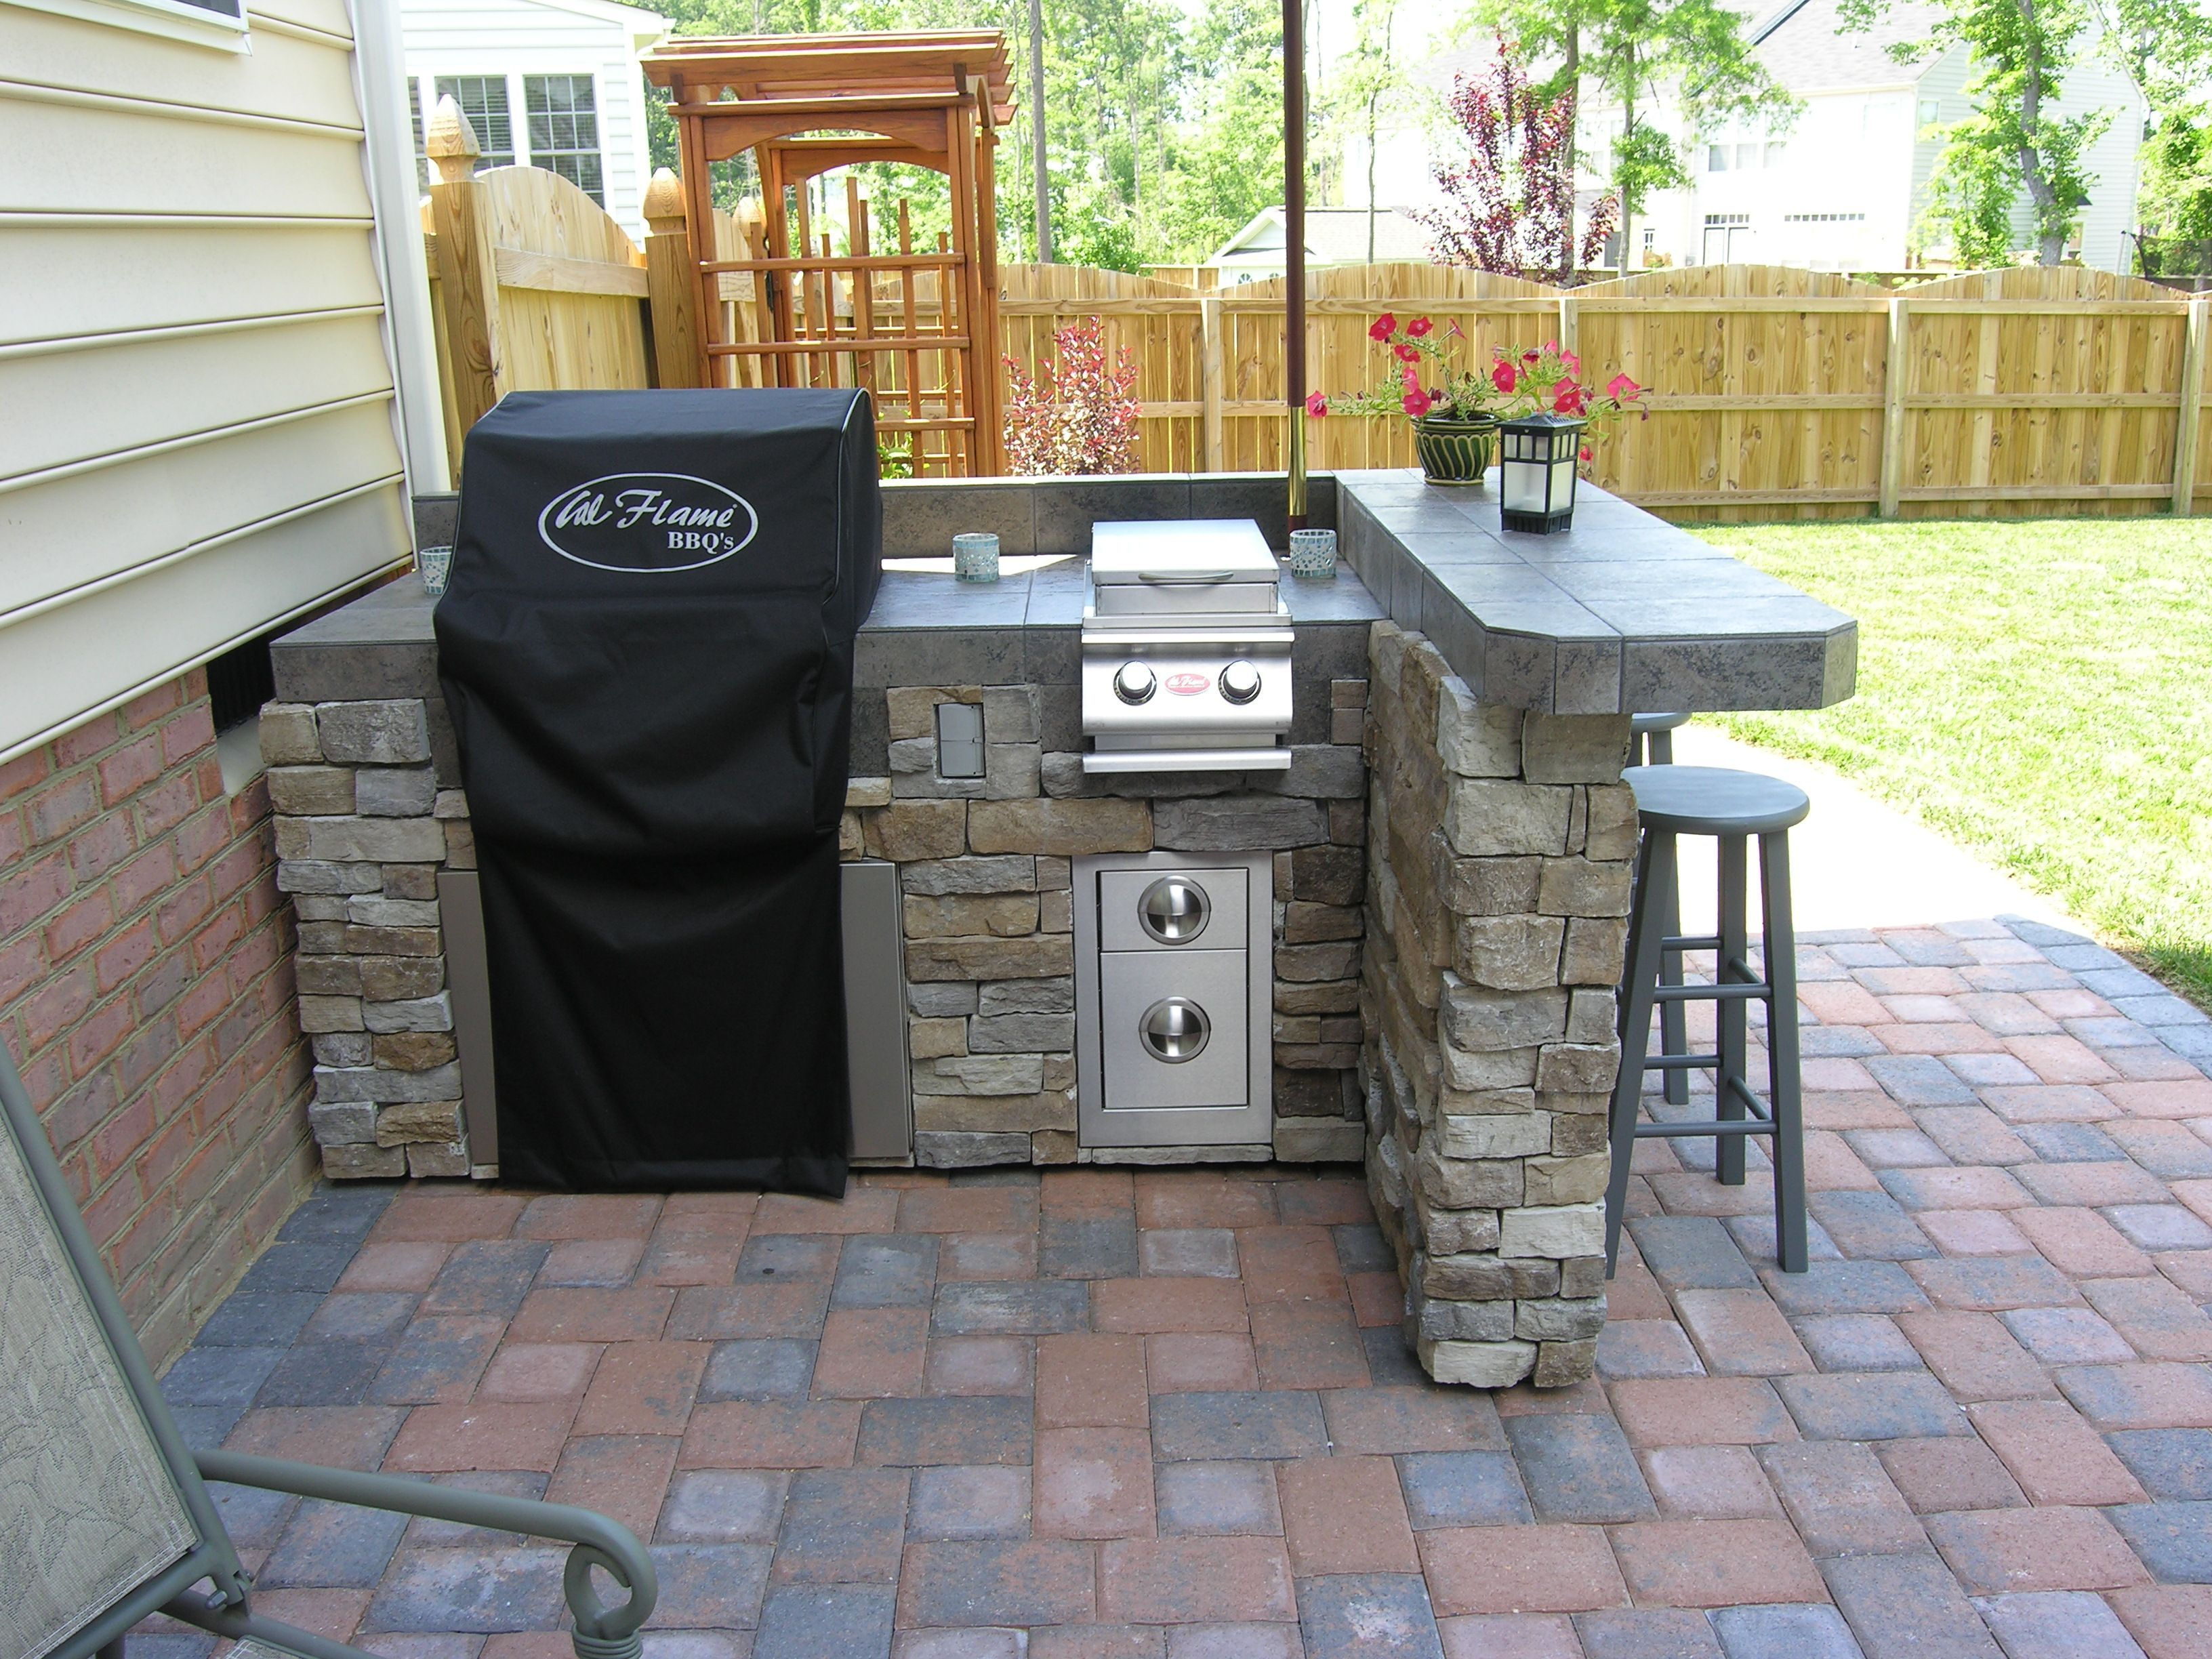 Small Outdoor Kitchen Outdoor Grill Kitchen Grill Cabinet Grill Table And Oth Tracy Small Outdoor Kitchens Outdoor Kitchen Decor Outdoor Kitchen Plans Small modern outdoor kitchen ideas